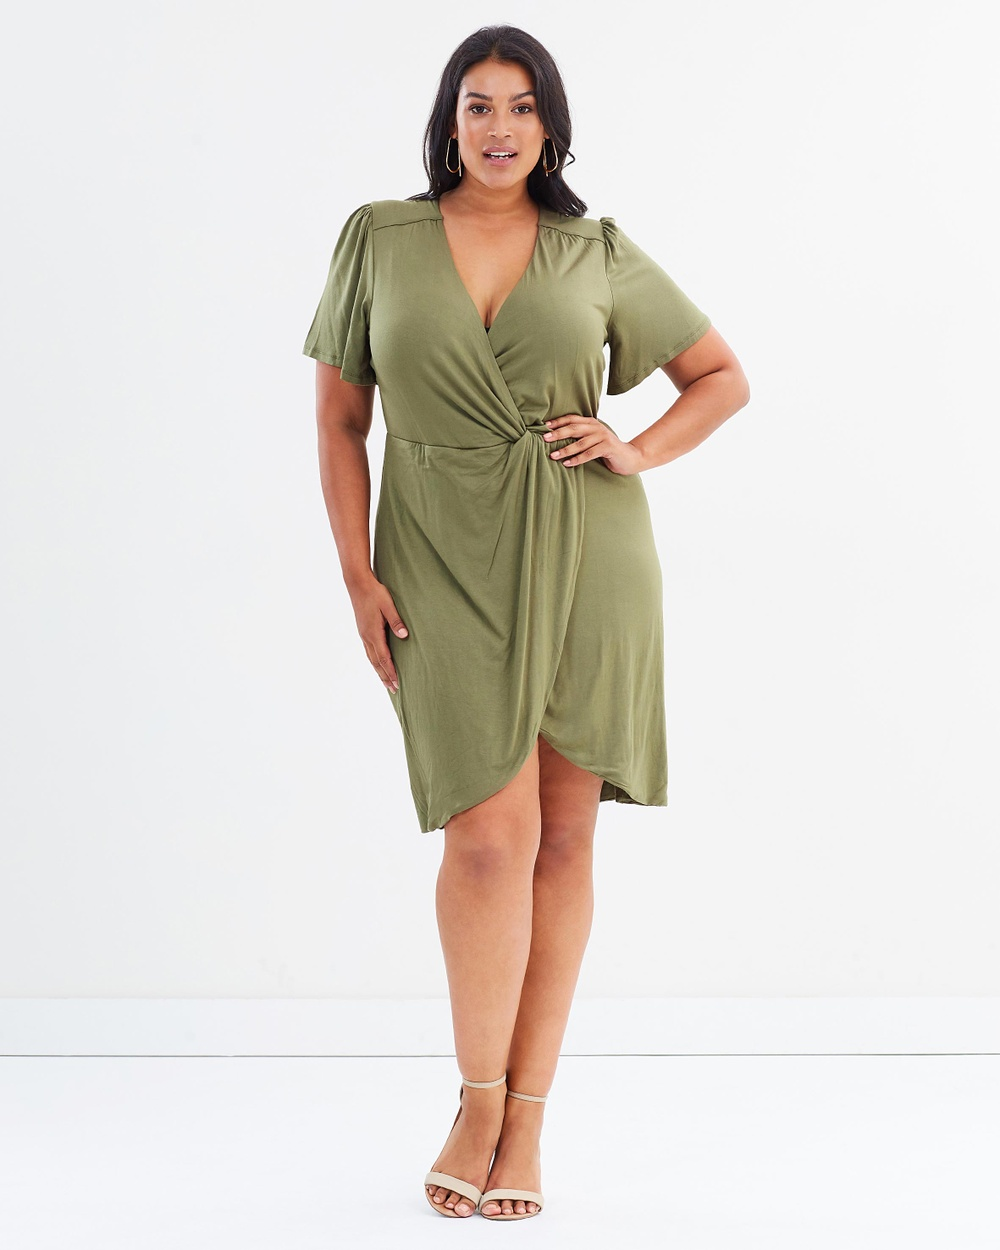 Rebel Wilson x Angels Twist Faux Wrap Dress Dresses Burnt Olive Twist Faux Wrap Dress